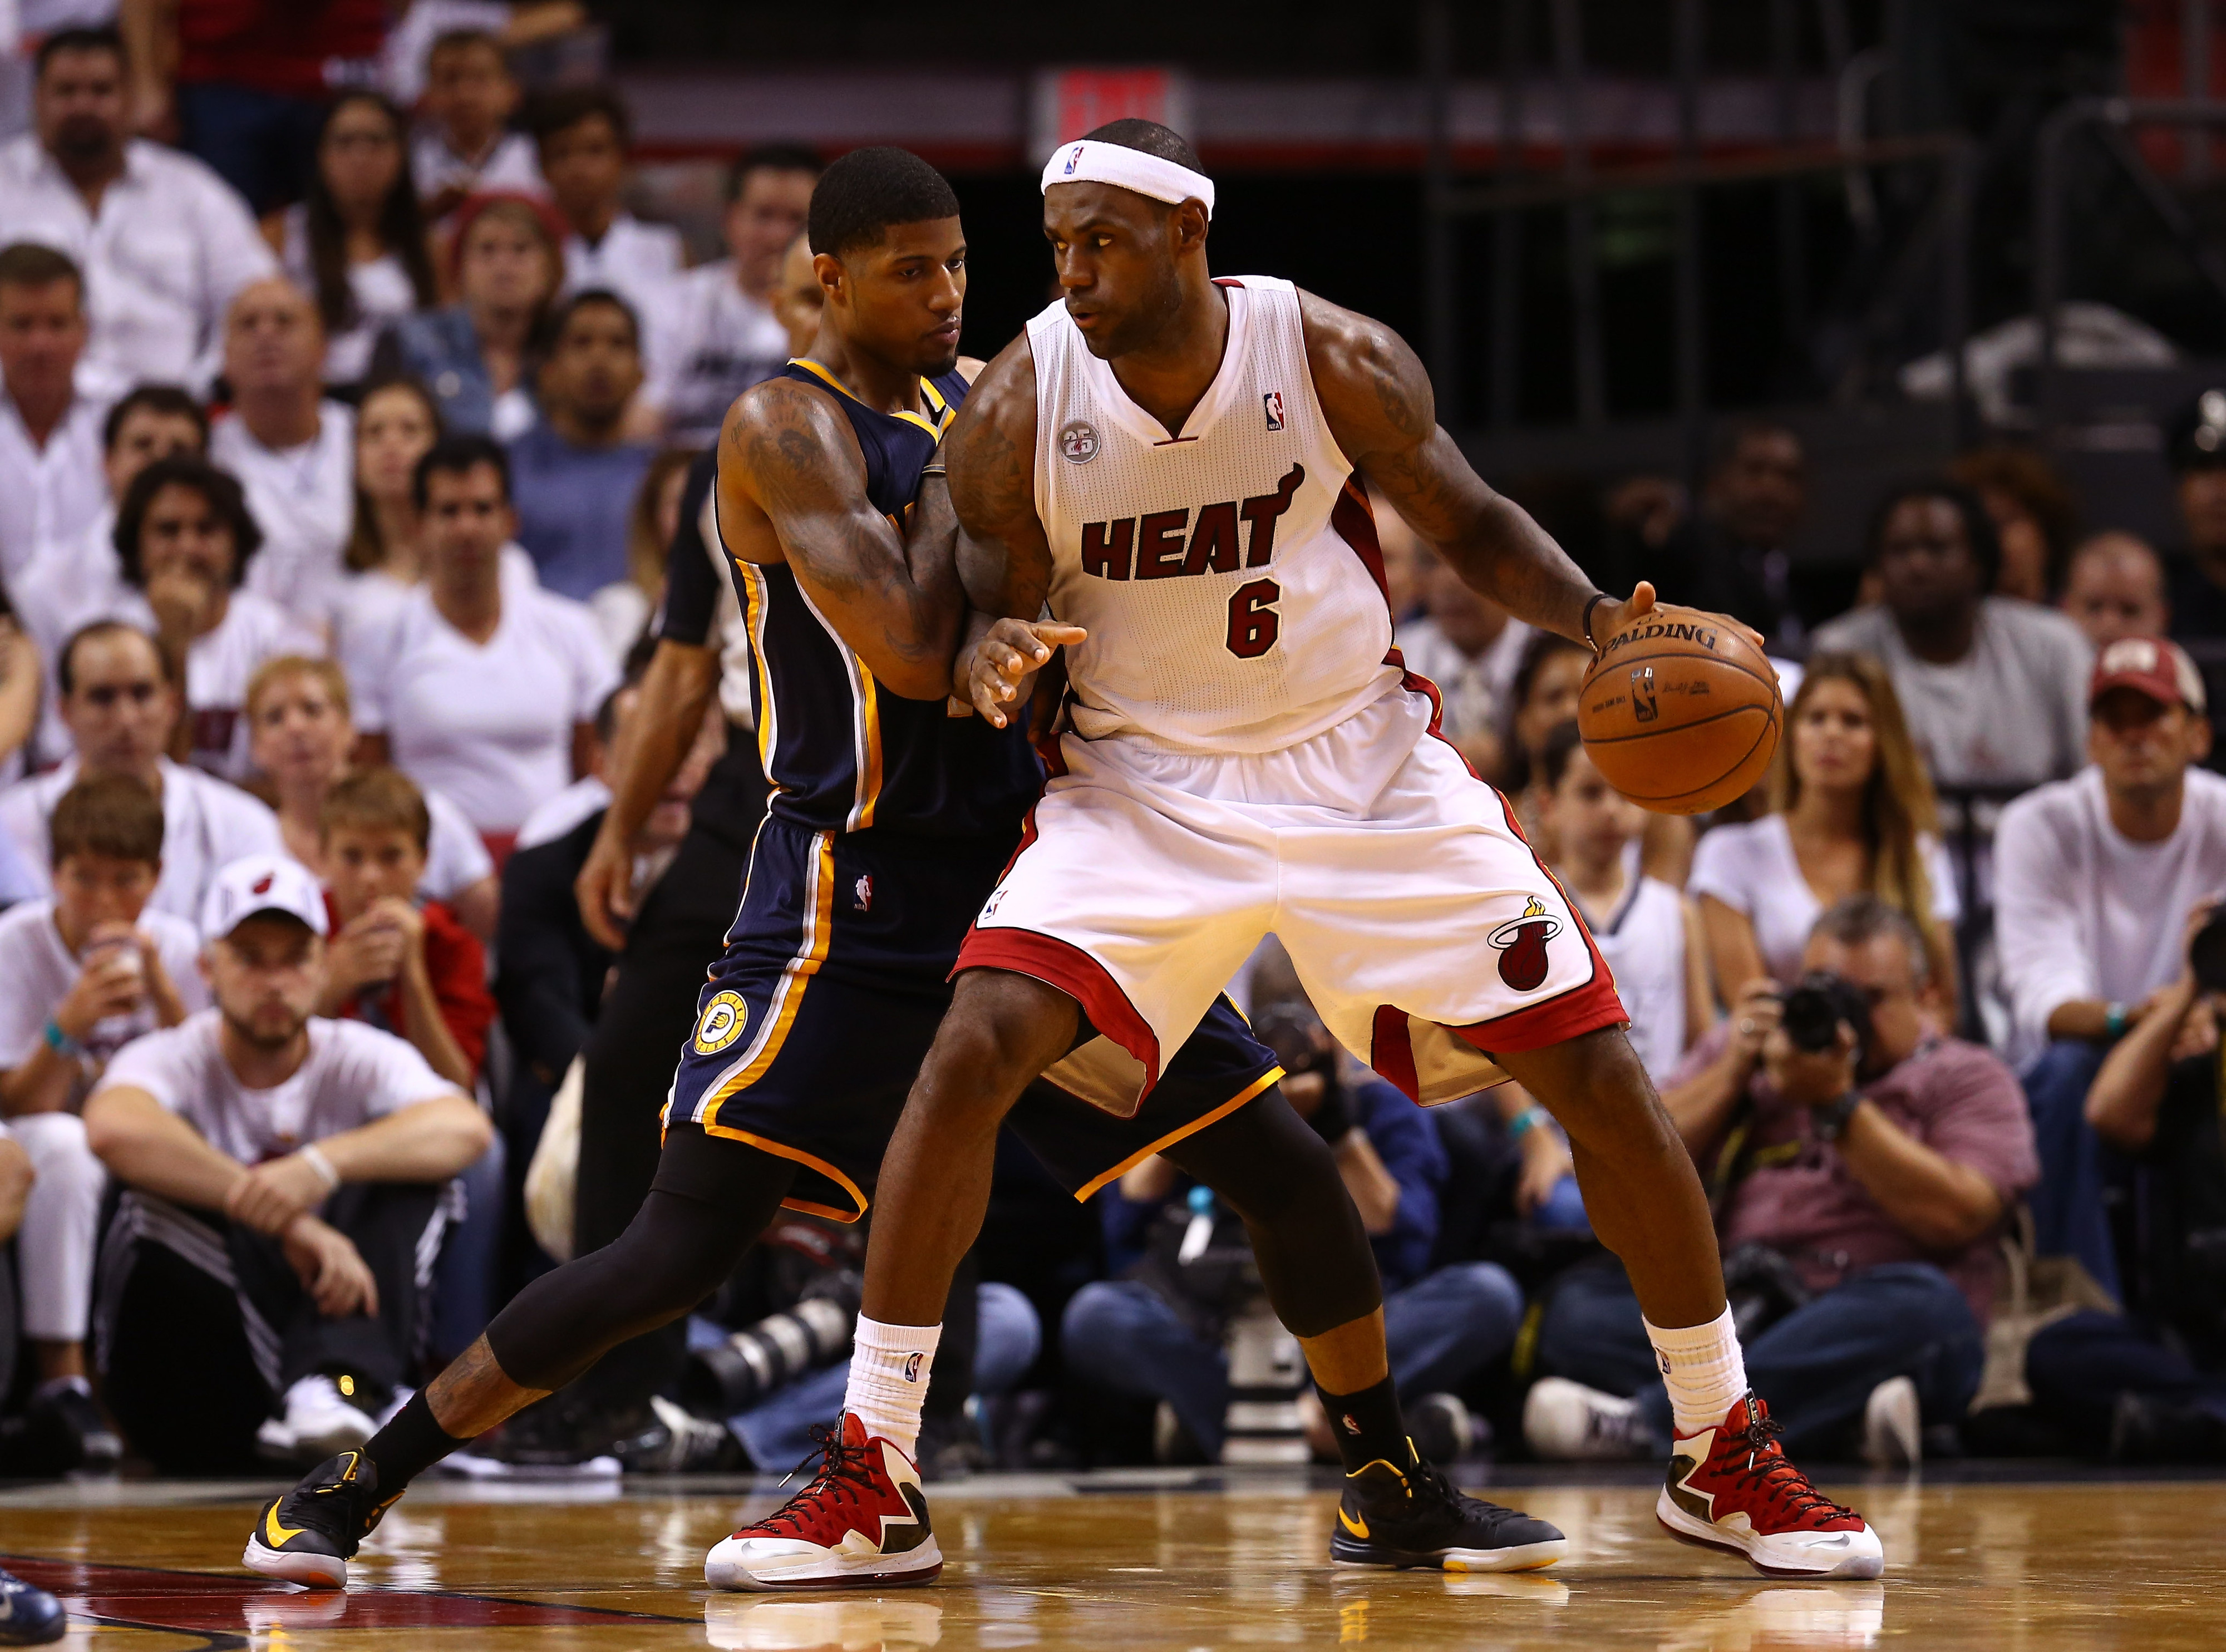 Pacers vs. Heat Game 5, NBA Playoffs 2013: Heat push Pacers to brink of elimination after 90-79 win